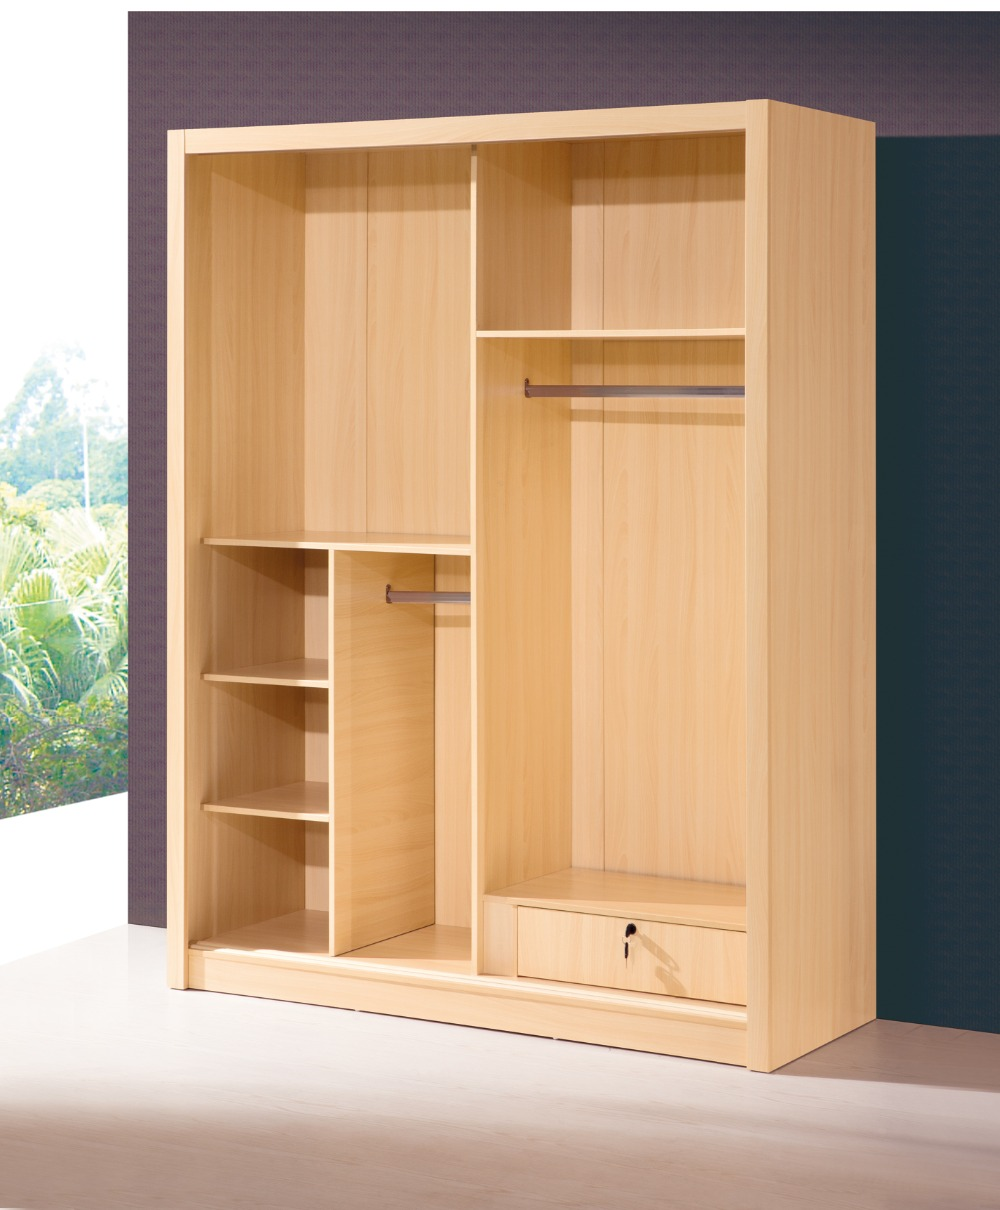 Wholesale New Double Color Wardrobe Design Furniture Bedroom Wardrobe In  Wardrobes From Furniture On Aliexpress.com | Alibaba Group